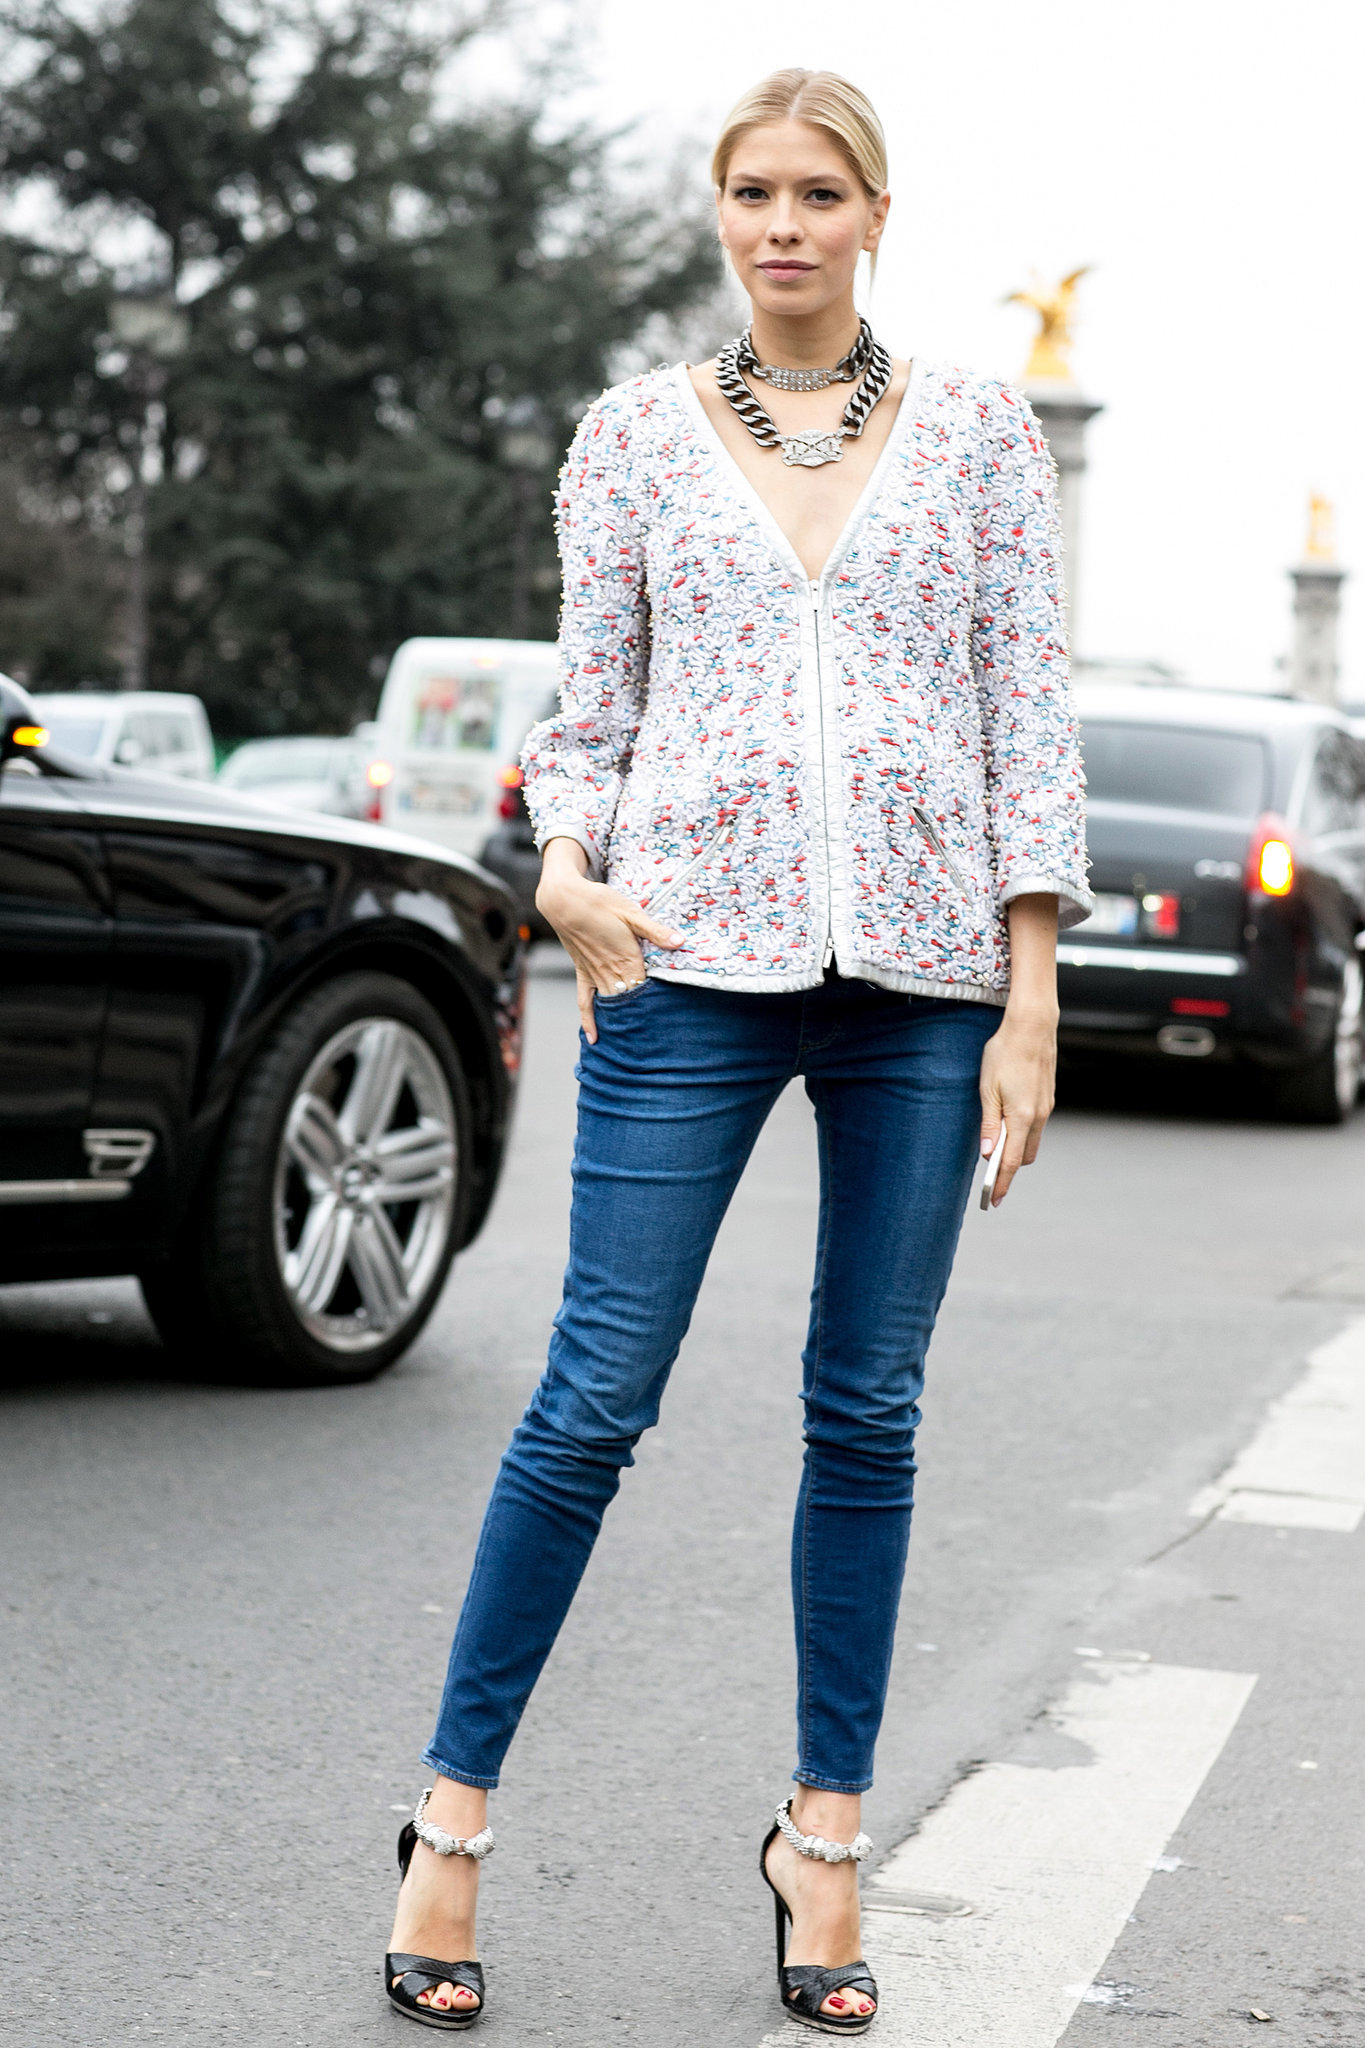 Elena Perminova's modern formula for updating the cardigan? Add skinny jeans and statement jewels.